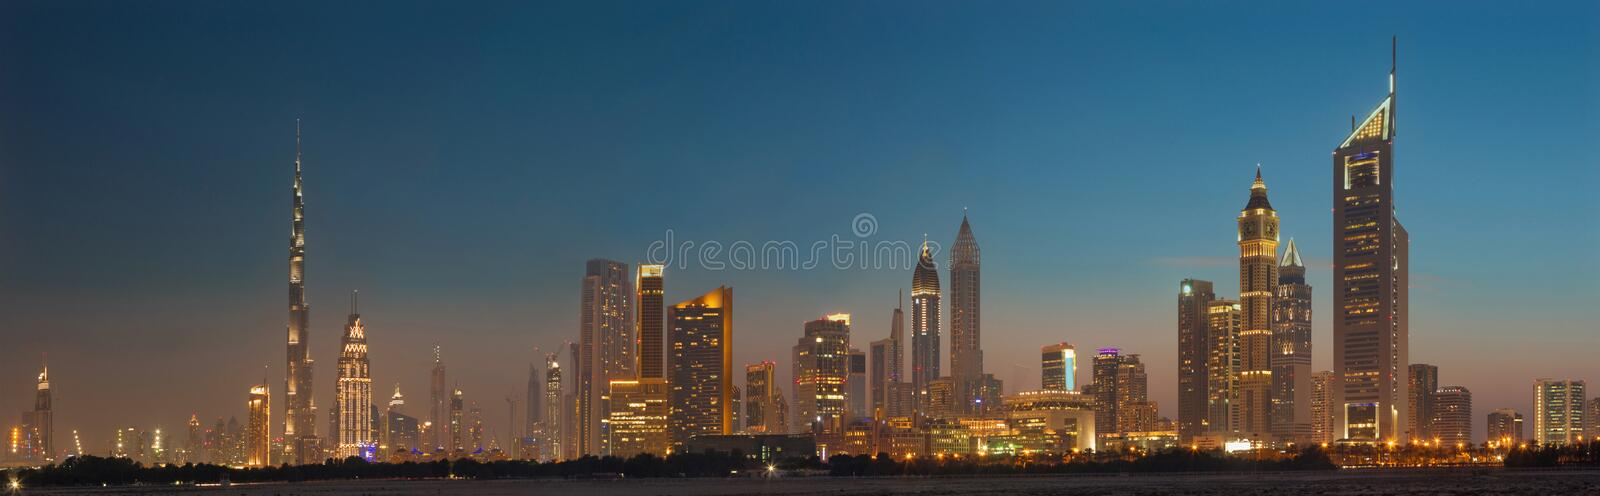 DUBAI, UAE - MARCH 31, 2017: The evening skyline of Downtown with the Burj Khalifa and Emirates Towers.  royalty free stock photography